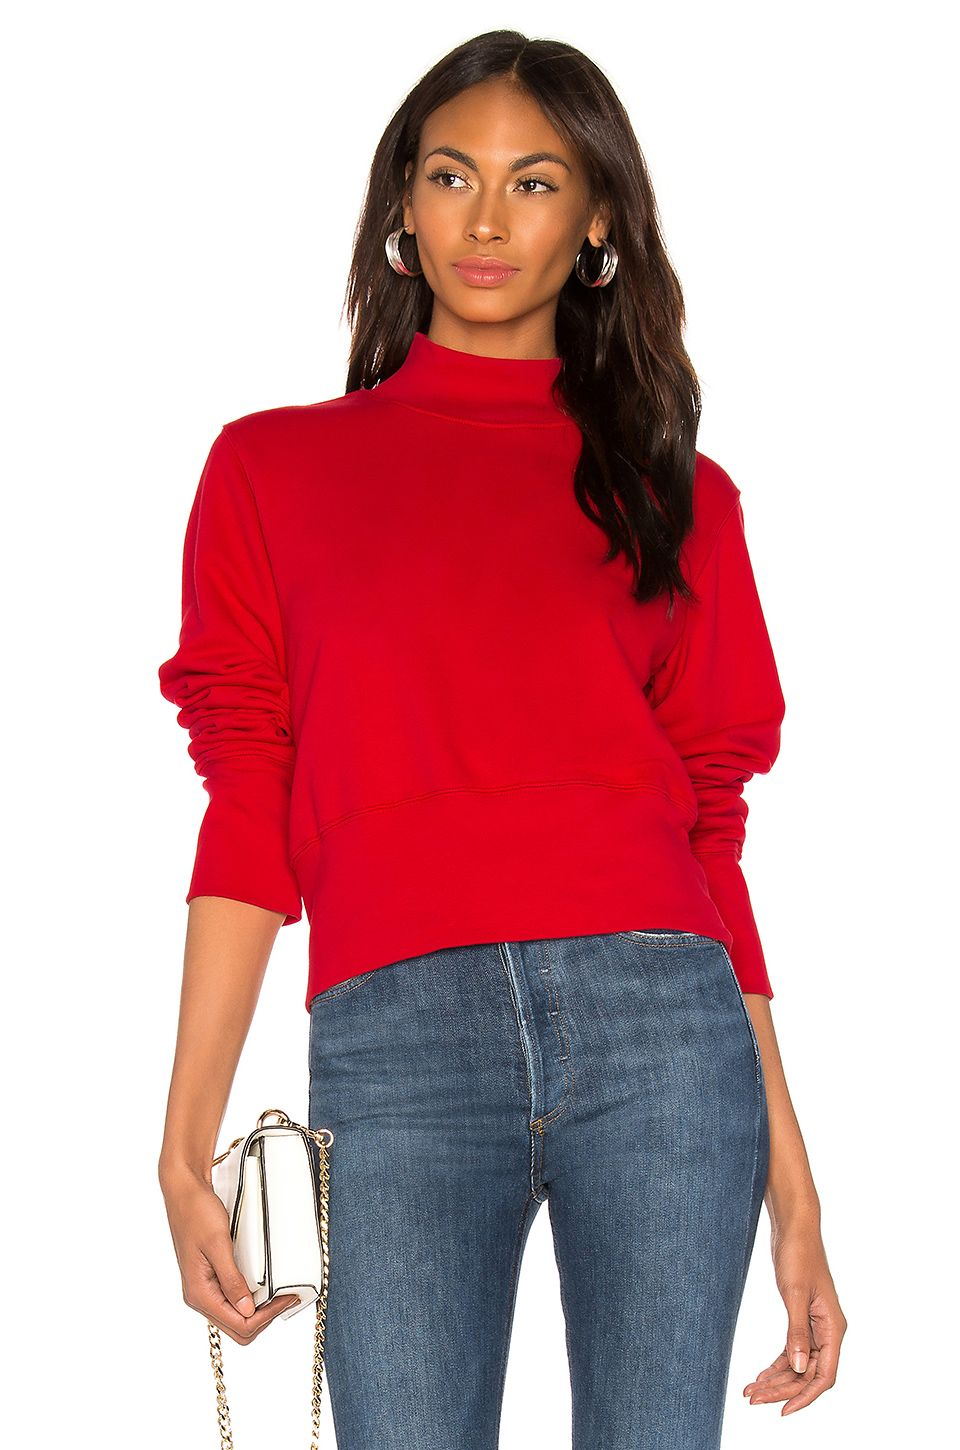 The Milan Sweatshirt by Cotton Citizen, available on revolve.com for $195 Olivia Culpo Top Exact Product